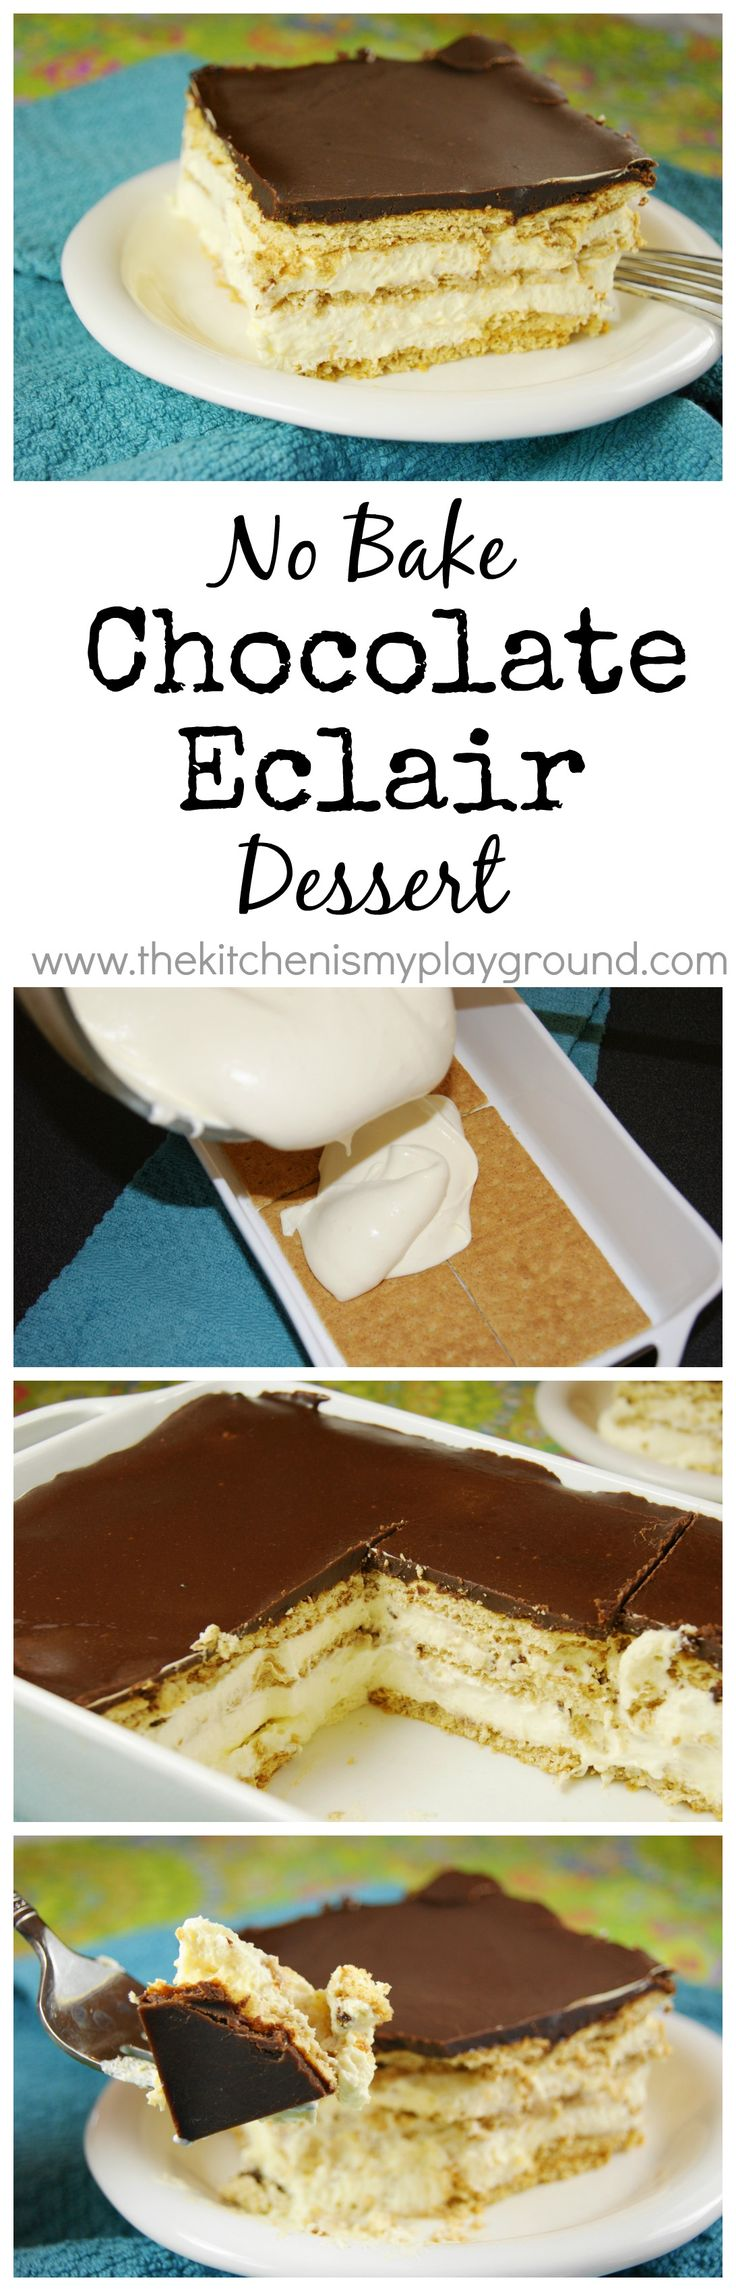 Creamy & delicious No-Bake Chocolate Eclair Dessert -- moms, you're SO not gonna want to share this with the fam! ;) http://www.thekitchenismyplayground.com/2012/03/no-bake-chocolate-eclair-dessert.html